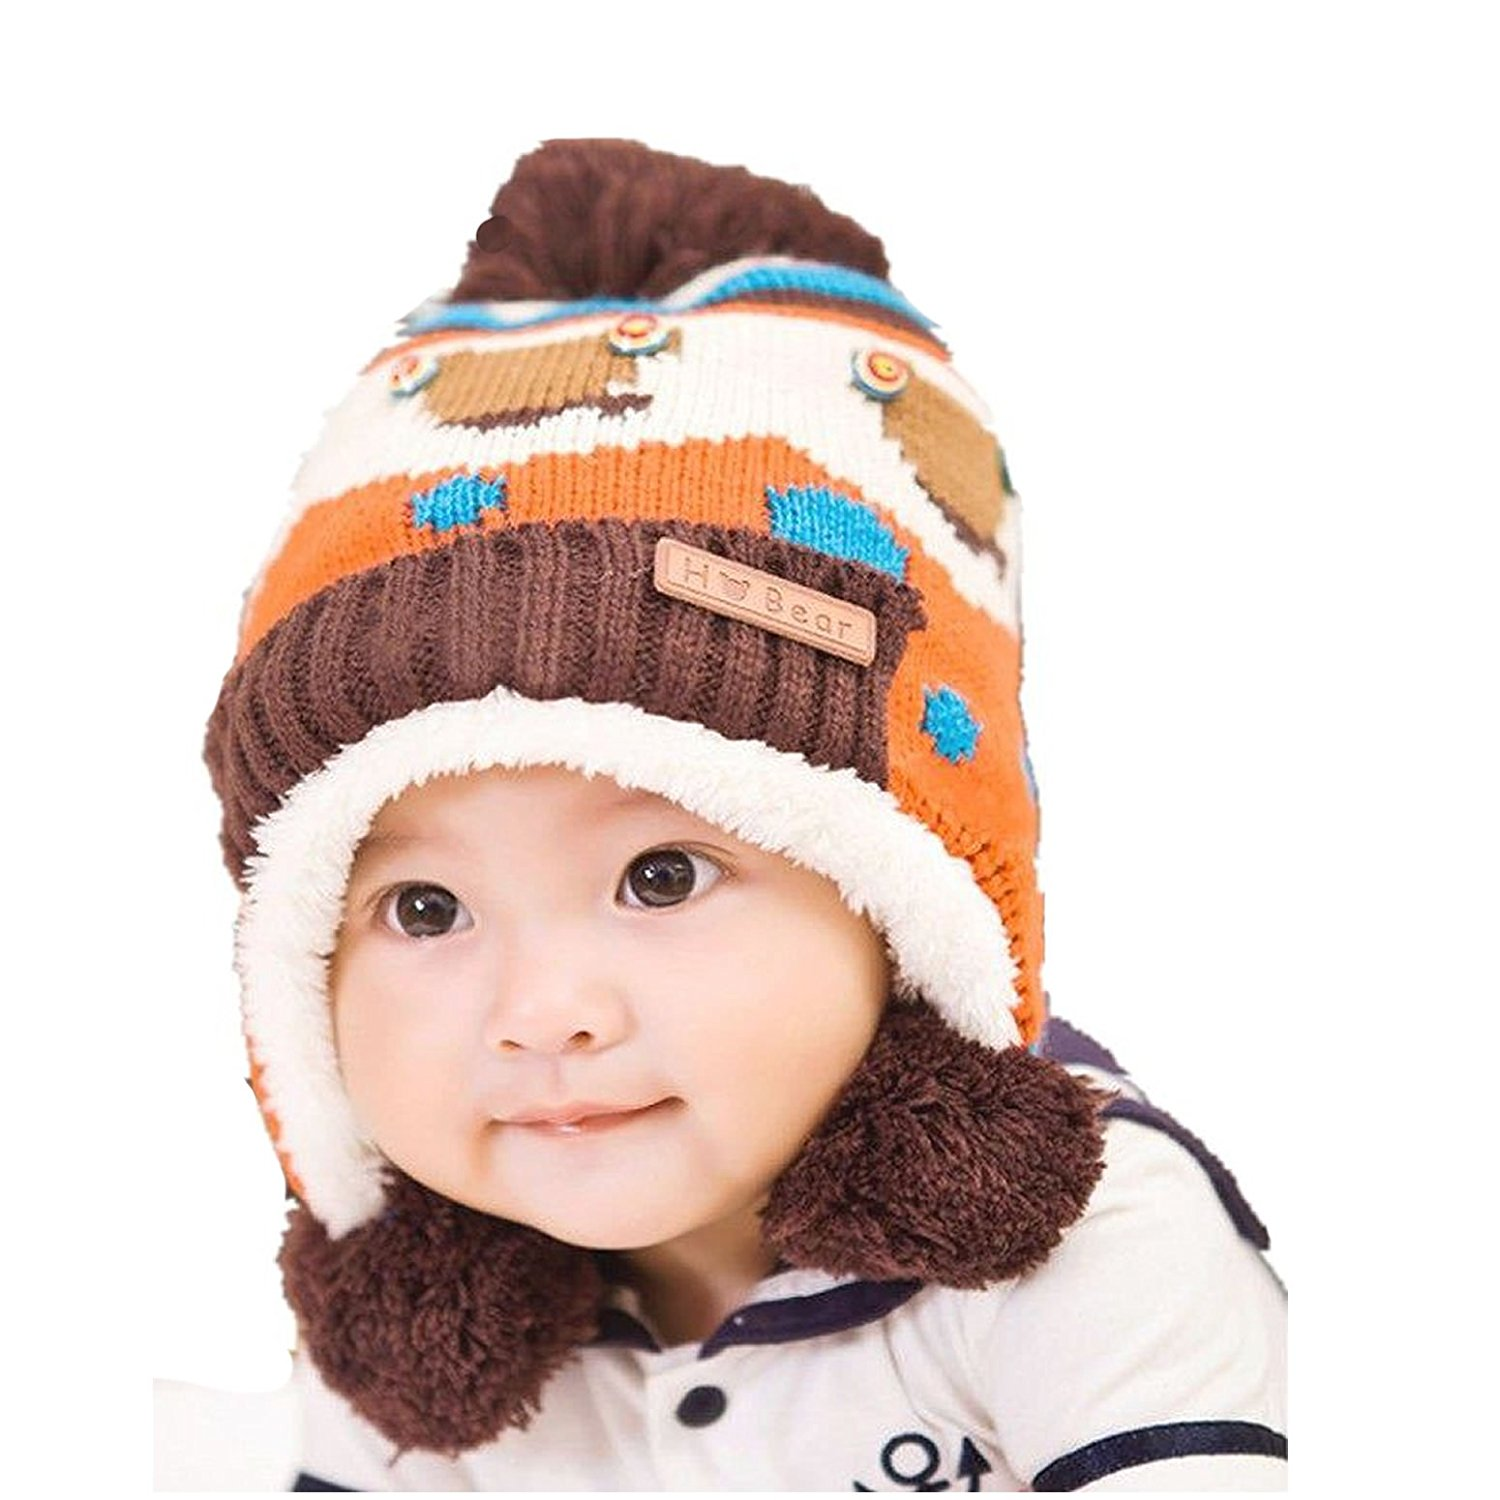 31791a049ee Get Quotations · Dealzip Inc Cute Blue Unisex Baby Toddler Kids Child  Winter Warm Panda Pattern Hat Beanie